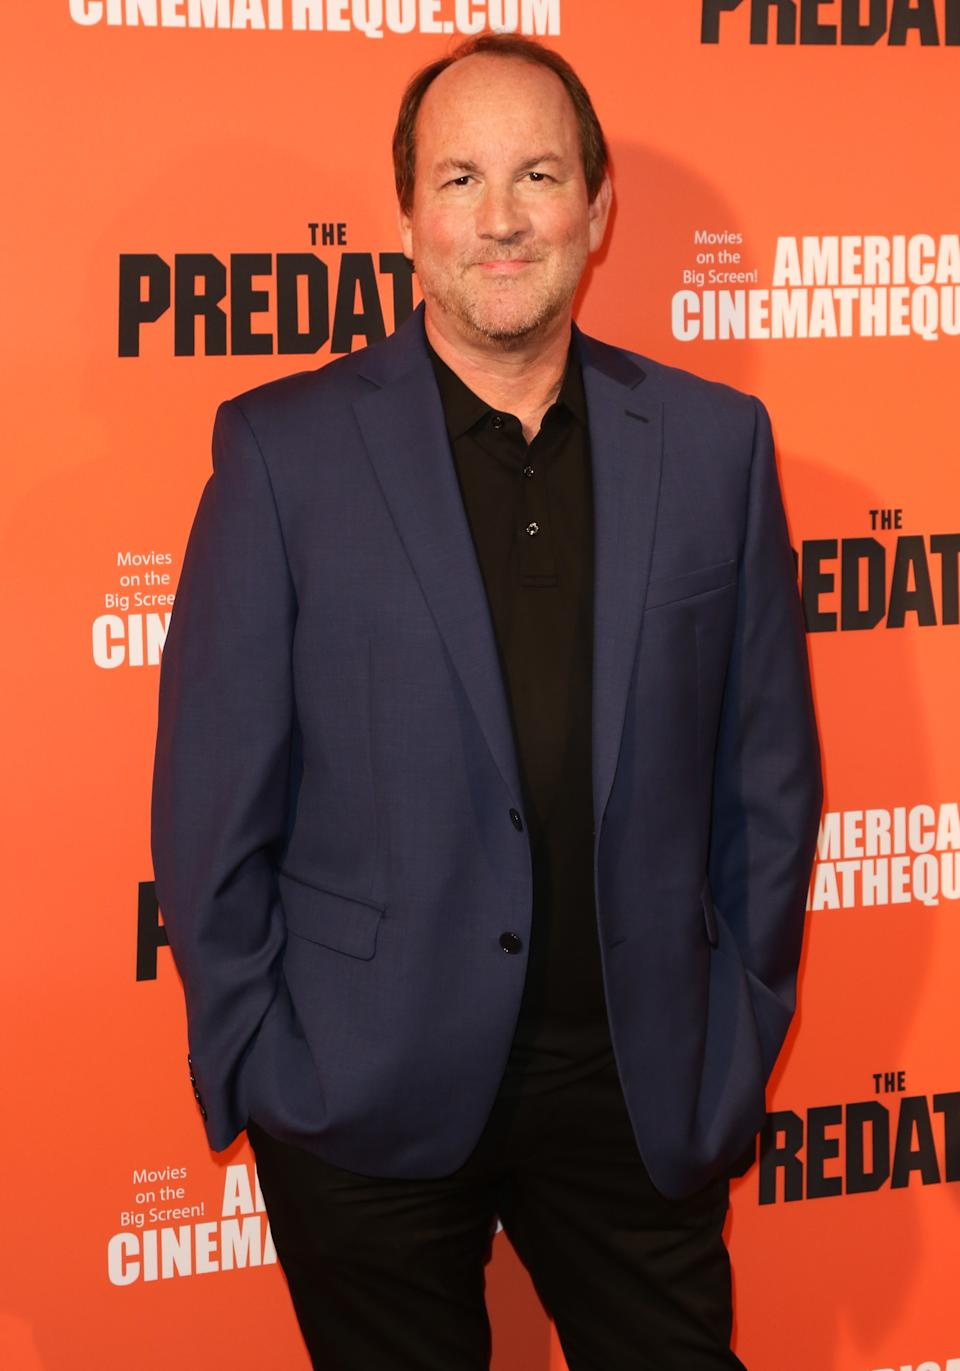 """HOLLYWOOD, CA - SEPTEMBER 12:  Screenwriter  Fred Dekker attends the screening of 20th Century Fox's """"The Predator"""" at the Egyptian Theatre on September 12, 2018 in Hollywood, California.  (Photo by Paul Archuleta/FilmMagic)"""